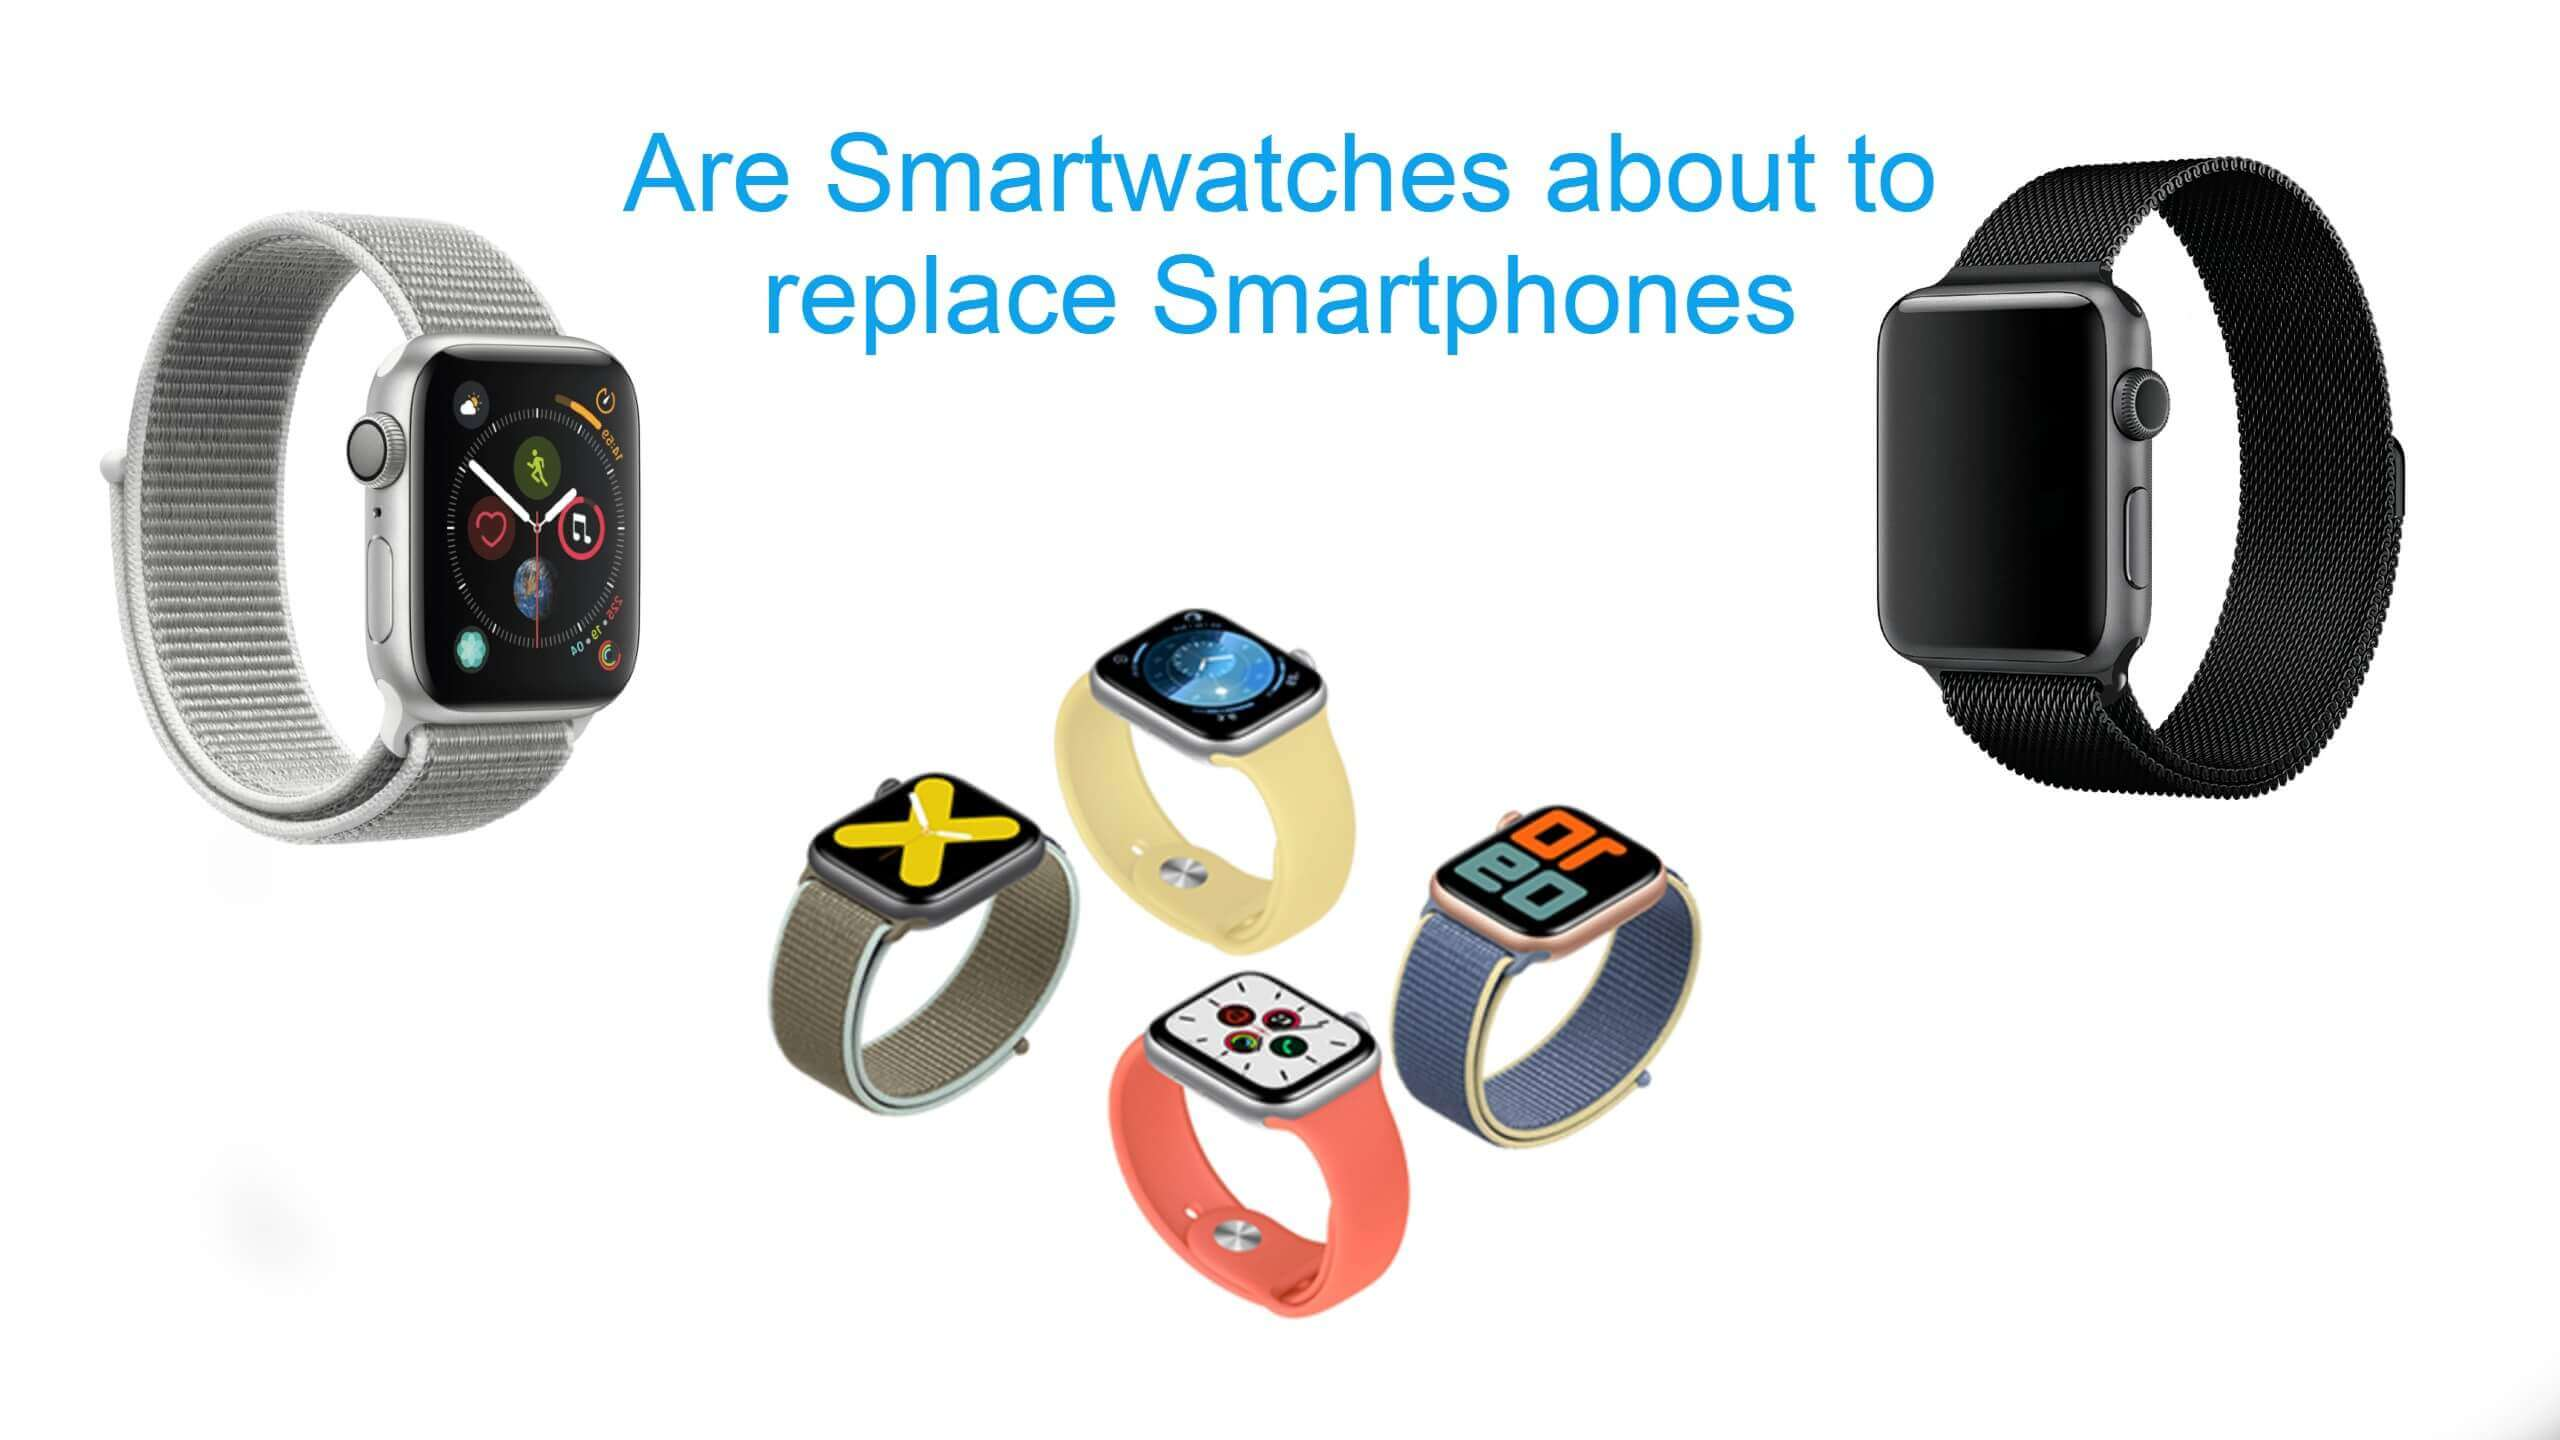 Are Smartwatches about to replace Smartphones